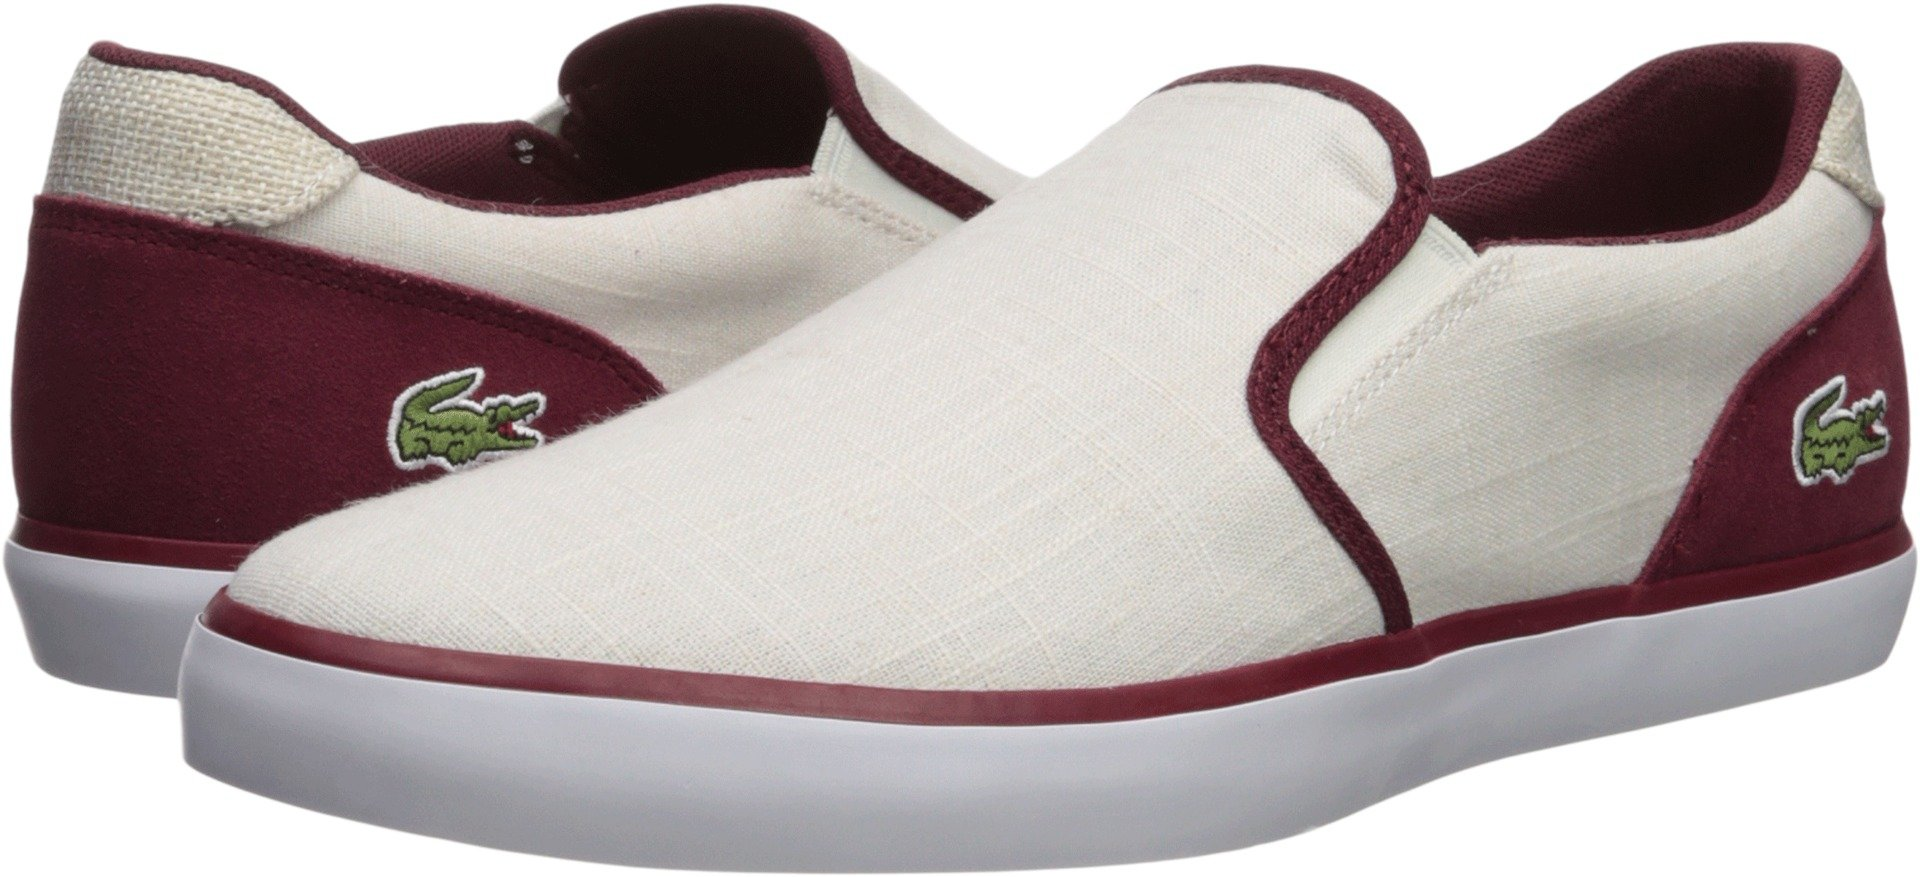 Lacoste Men's Jouer Slip on Sneaker, White Canvas, 12 M US